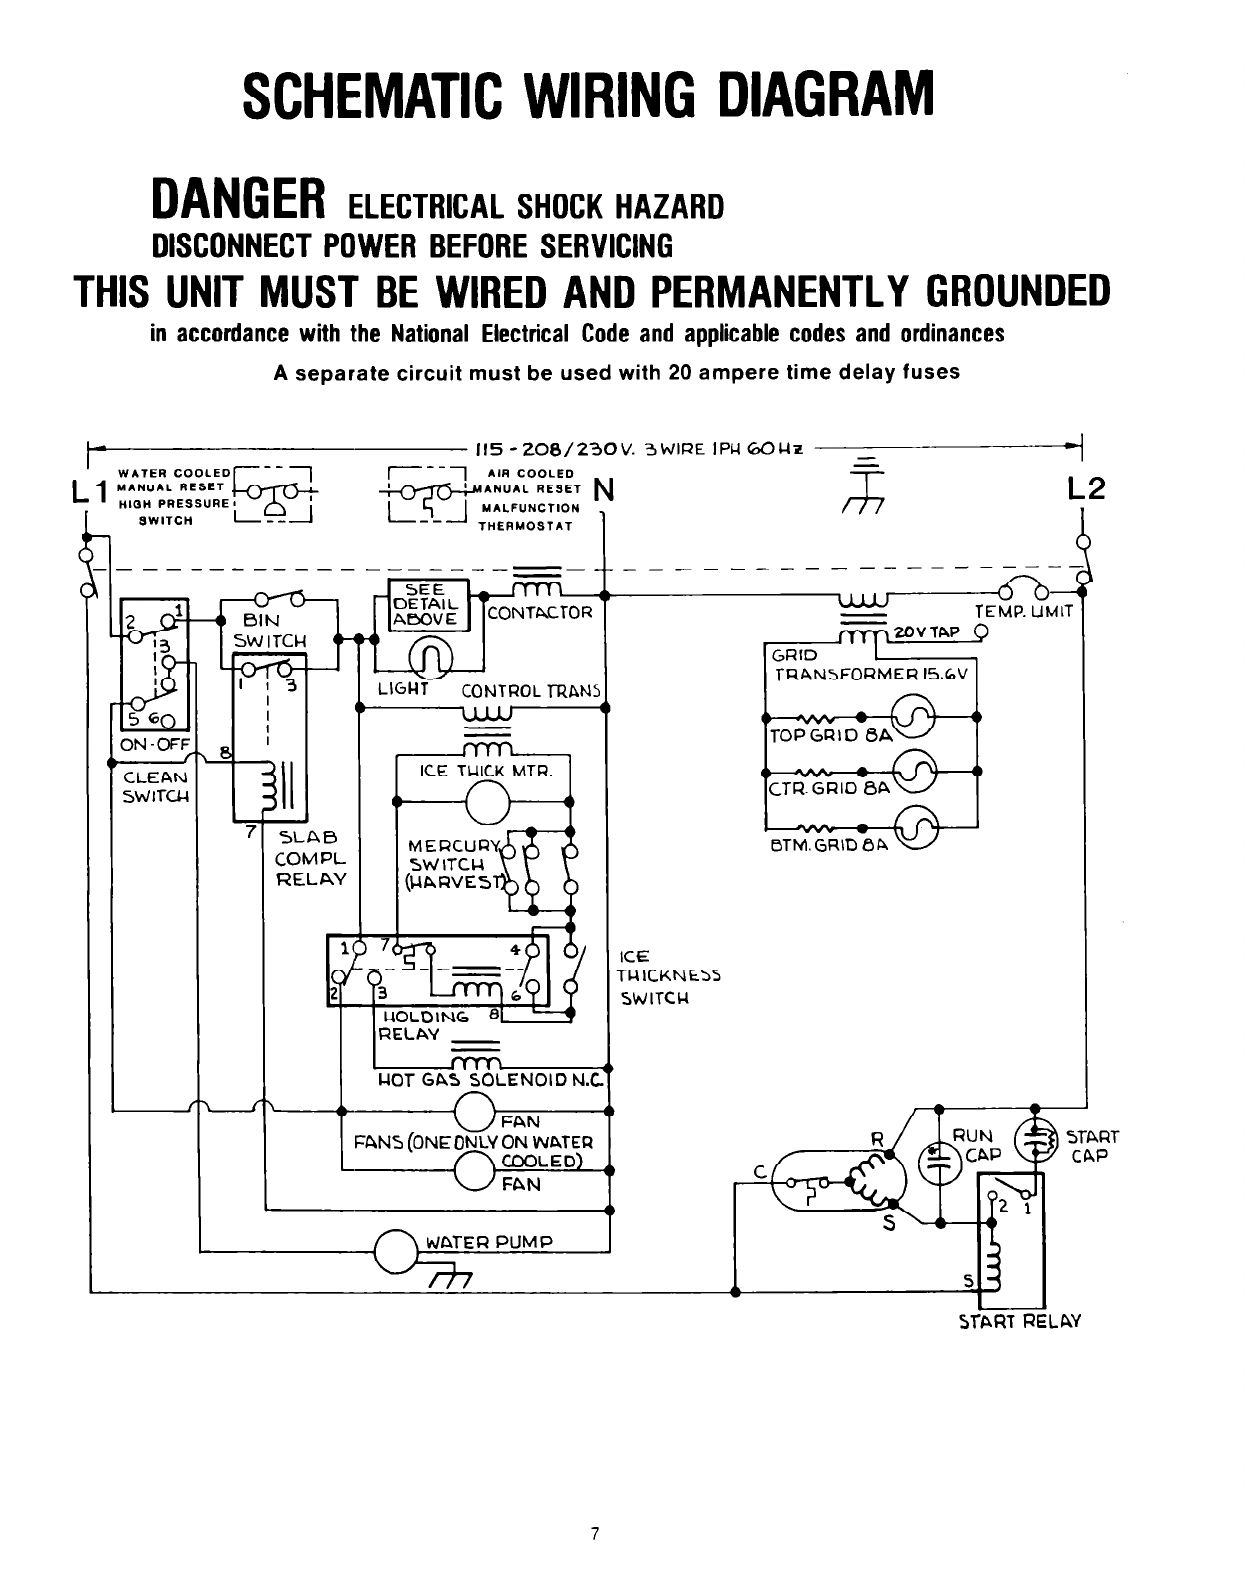 DIAGRAM] Heater Coil Whirlpool Ice Maker Wiring Diagram FULL Version HD  Quality Wiring Diagram - OUTLETDIAGRAM.CONOSCENZACALABRIA.IT | Whirlpool Wiring Schematics |  | outletdiagram.conoscenzacalabria.it